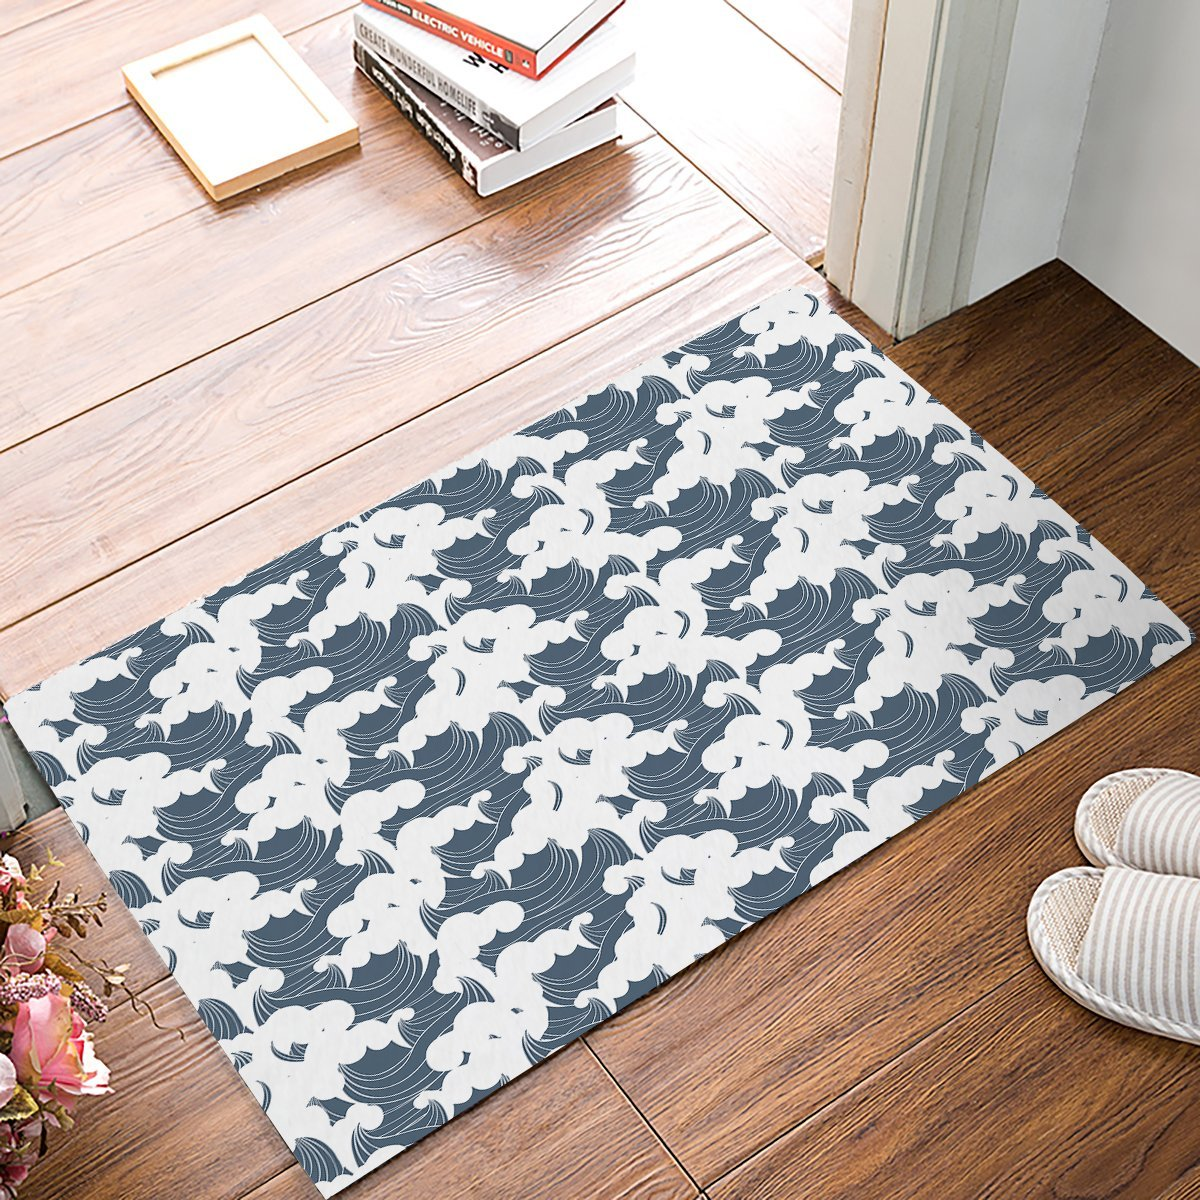 Blue And White Japanese Waves Pattern Door Mats Kitchen